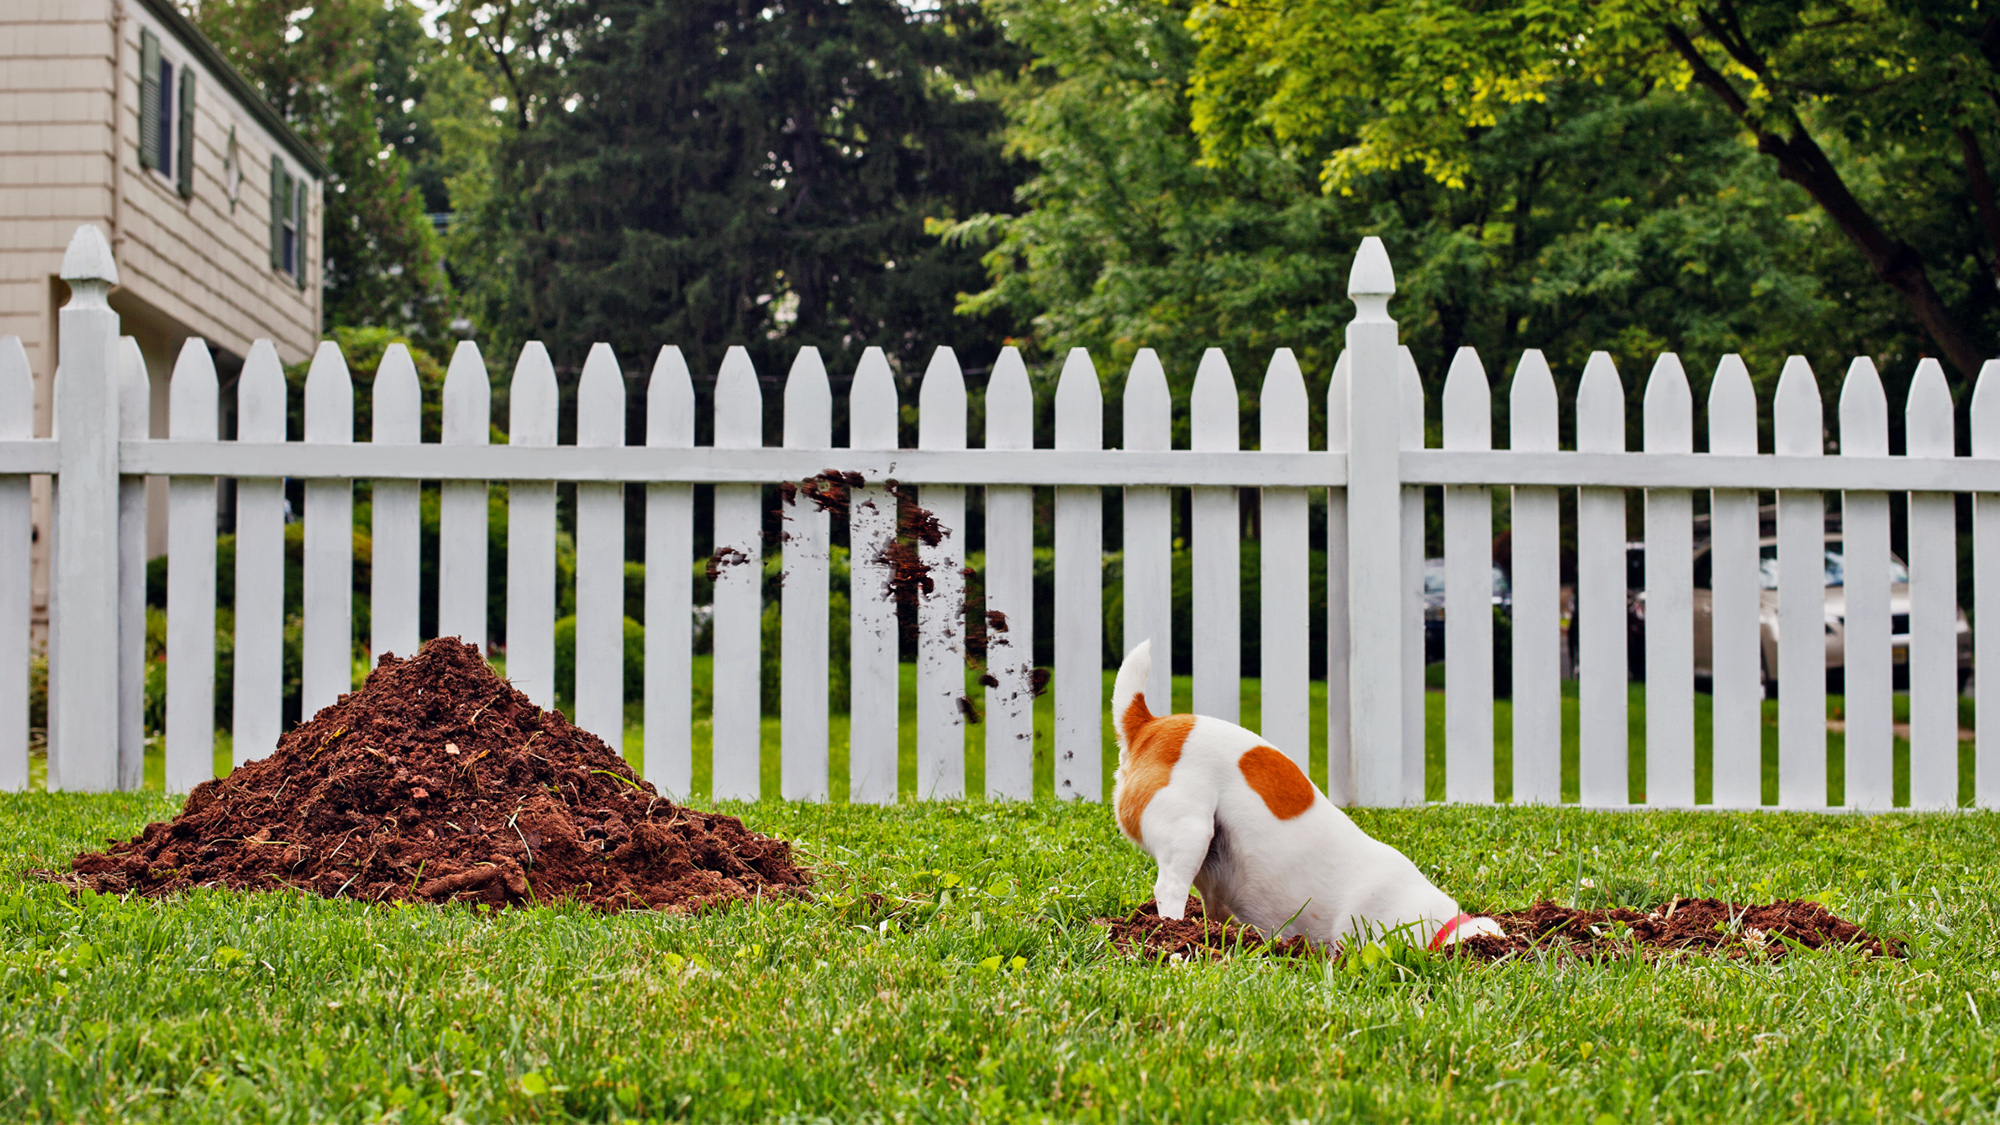 Help My Dogs Are Wrecking My Yard Realtor for Backyard Ideas For Dogs That Dig